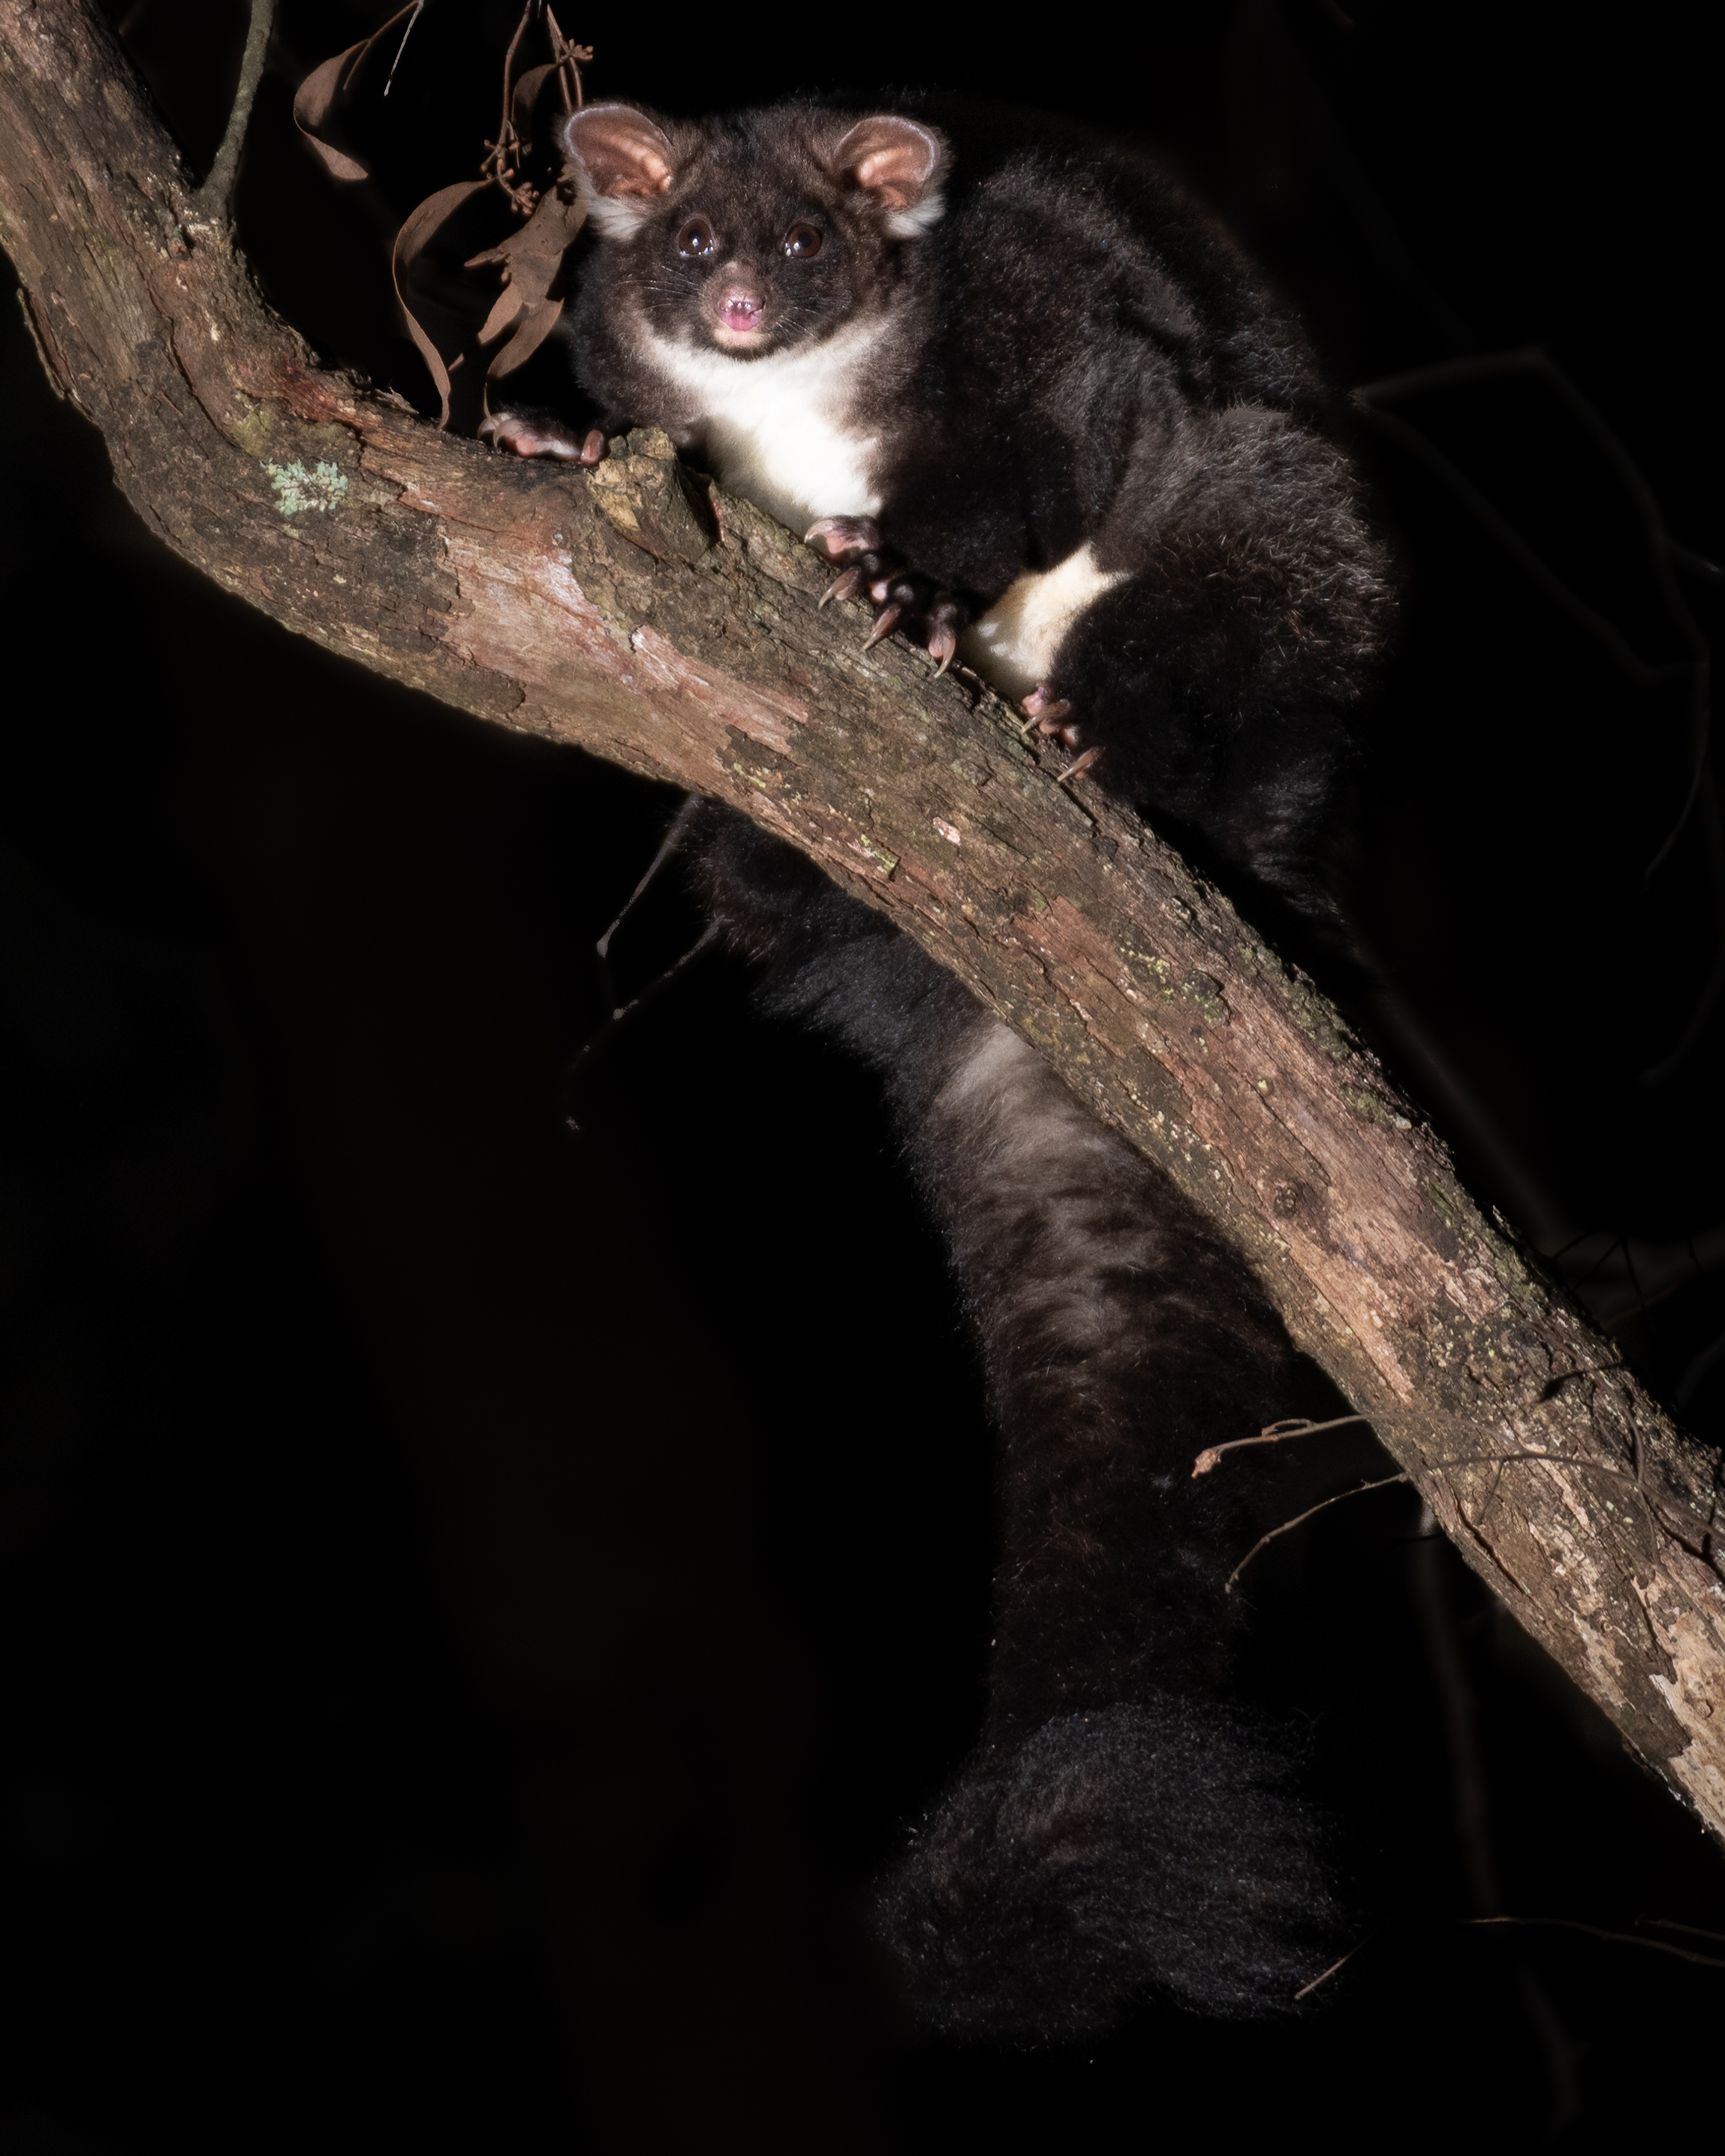 A Greater Glider perched on a branch